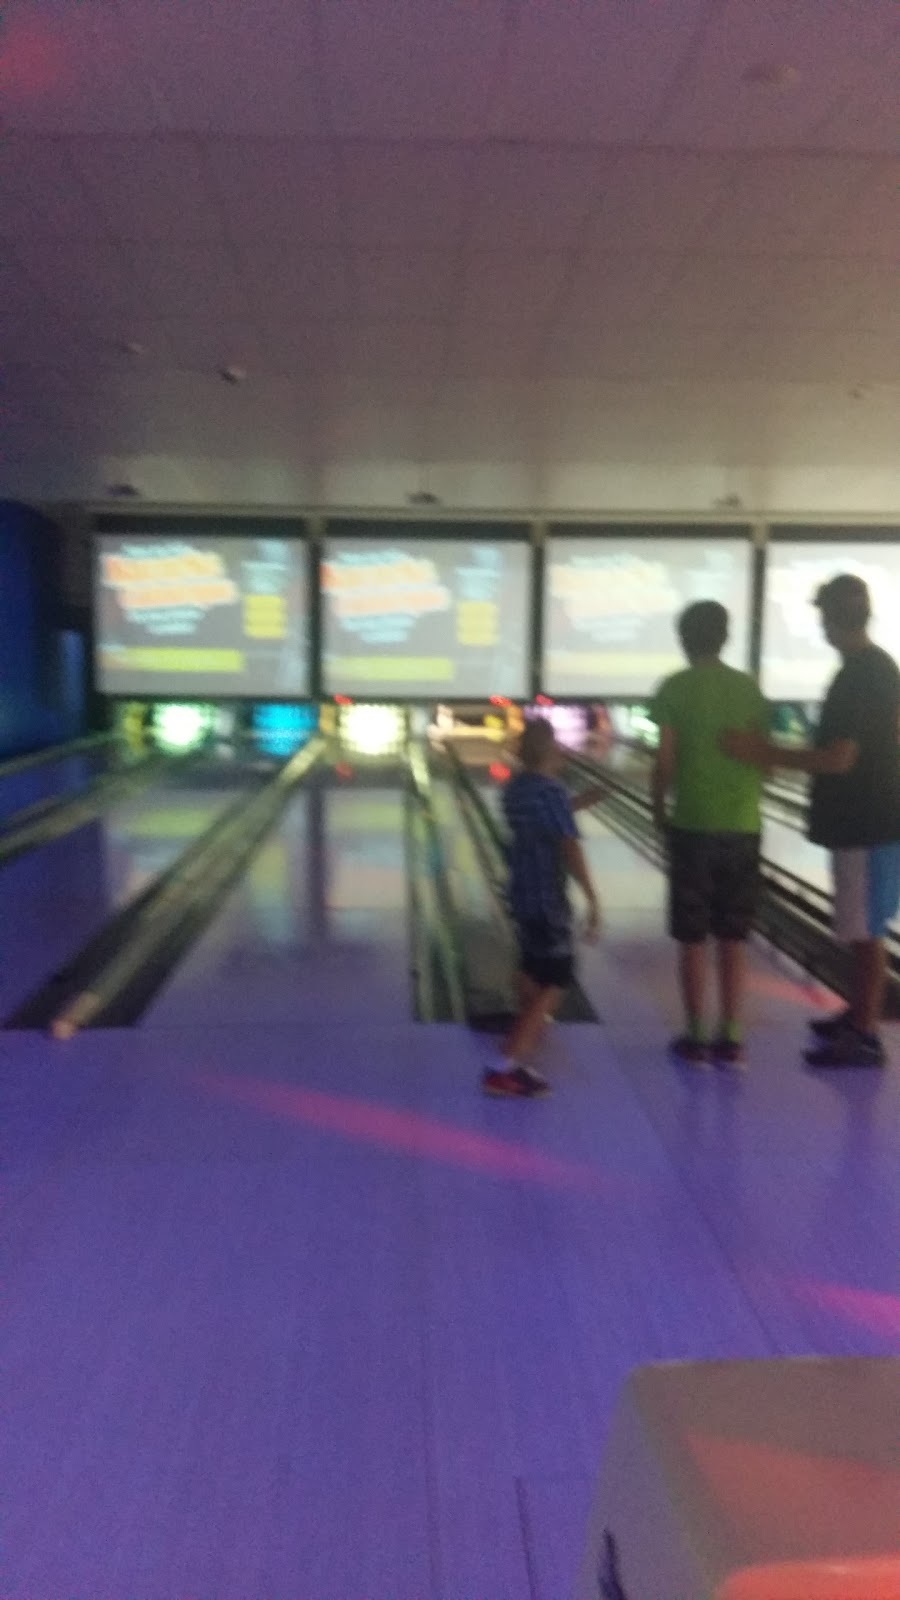 Campbelltown City Bowl | bowling alley | 11 Hollylea Rd, Leumeah NSW 2560, Australia | 0246255222 OR +61 2 4625 5222